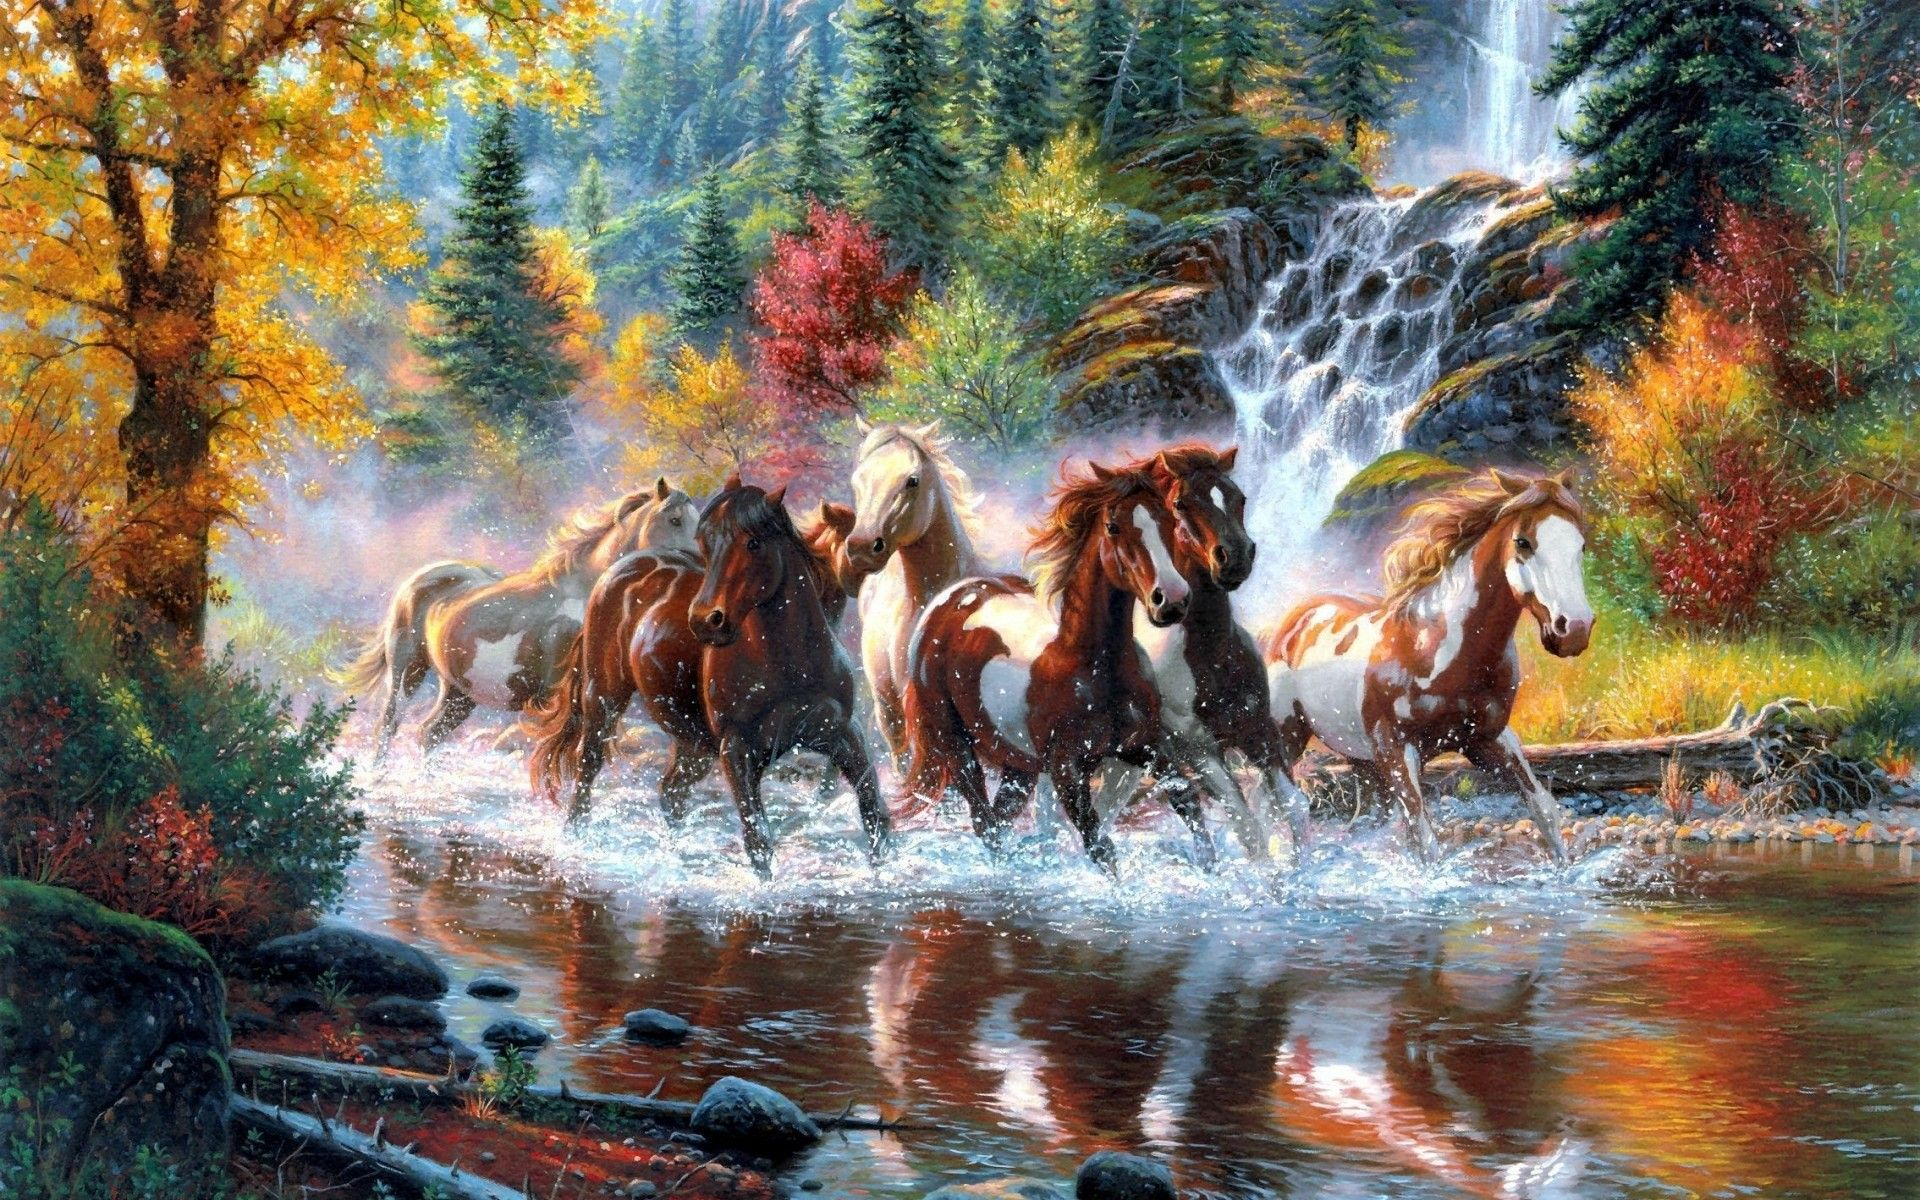 Beautiful Horses Running In River Waters Animal Wallpapers Hd Wallpaper Download For Ipad And Iphone Widescreen Horse Painting Cross Paintings Running Horses